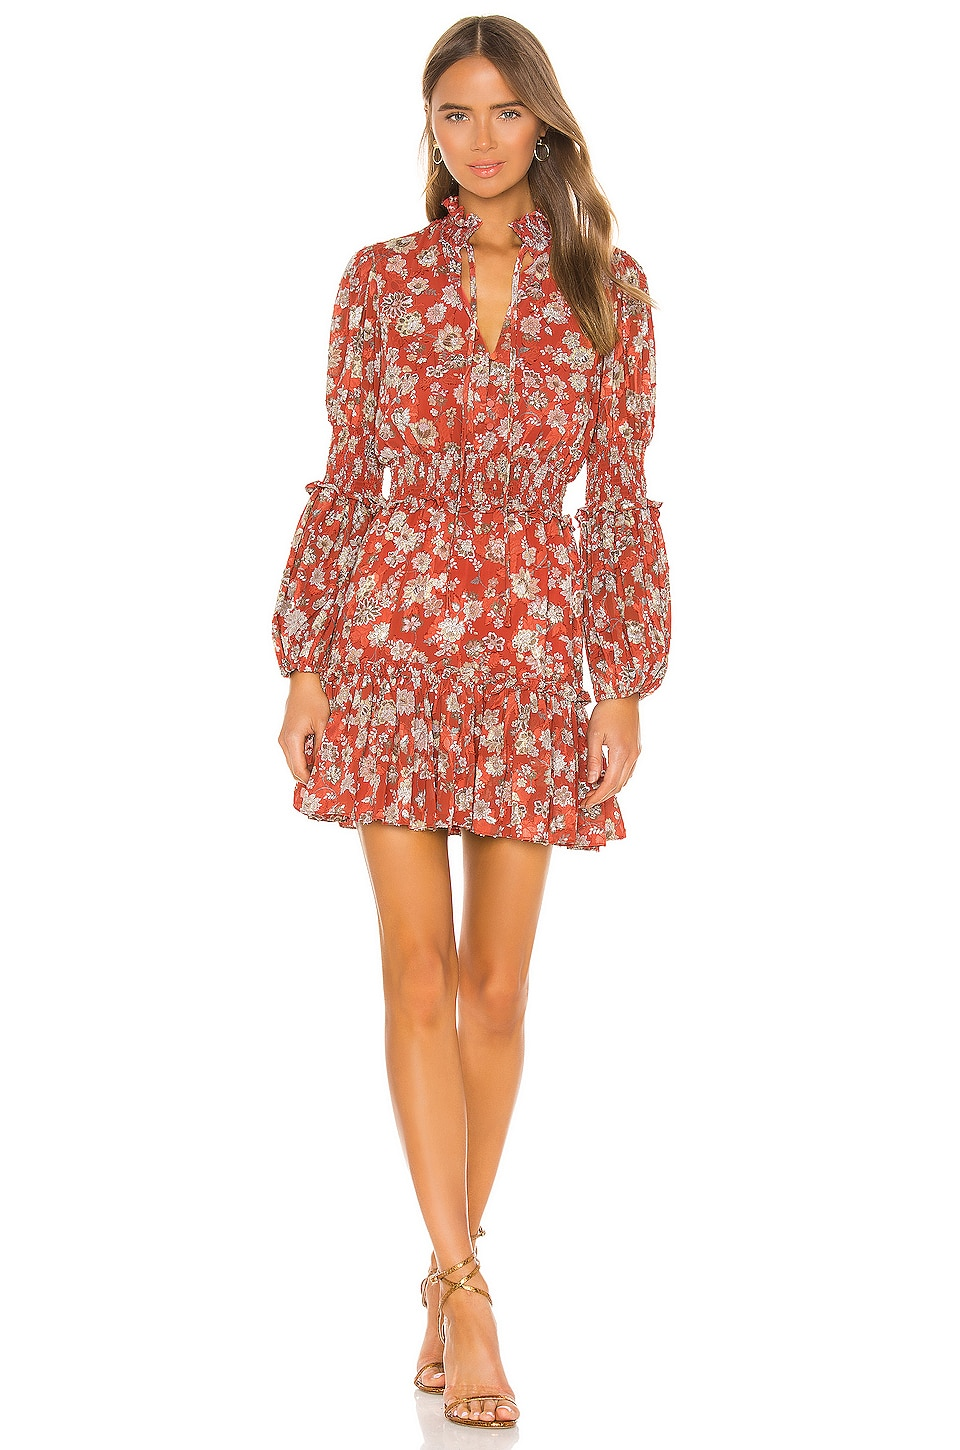 Alexis Rosewell Dress in Saffron Floral